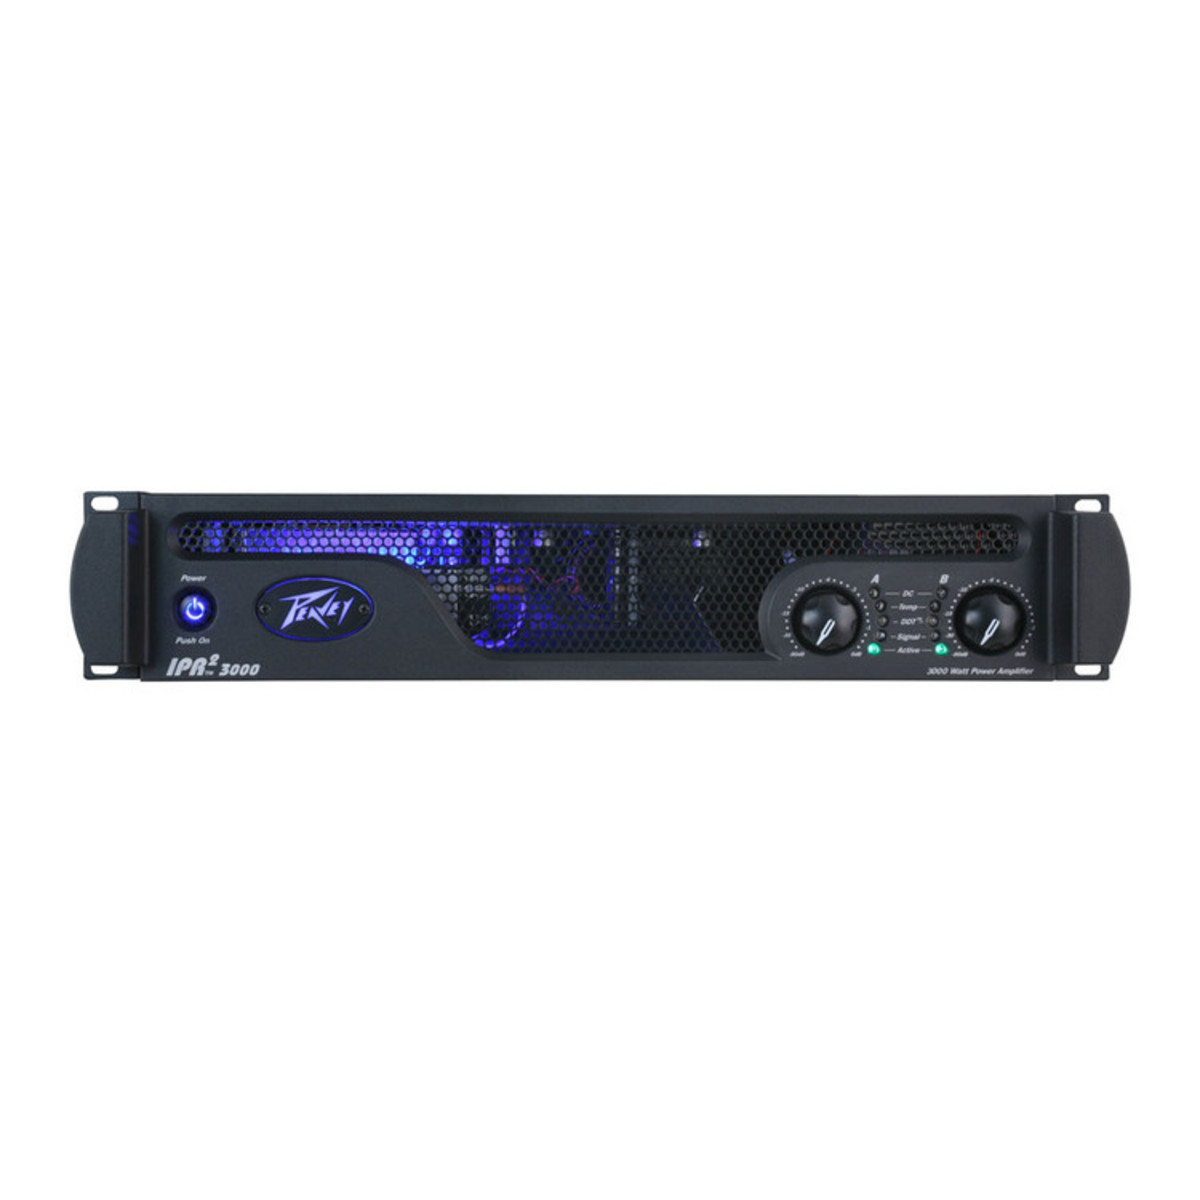 peavey ipr2 3000 power amplifier at gear4music. Black Bedroom Furniture Sets. Home Design Ideas